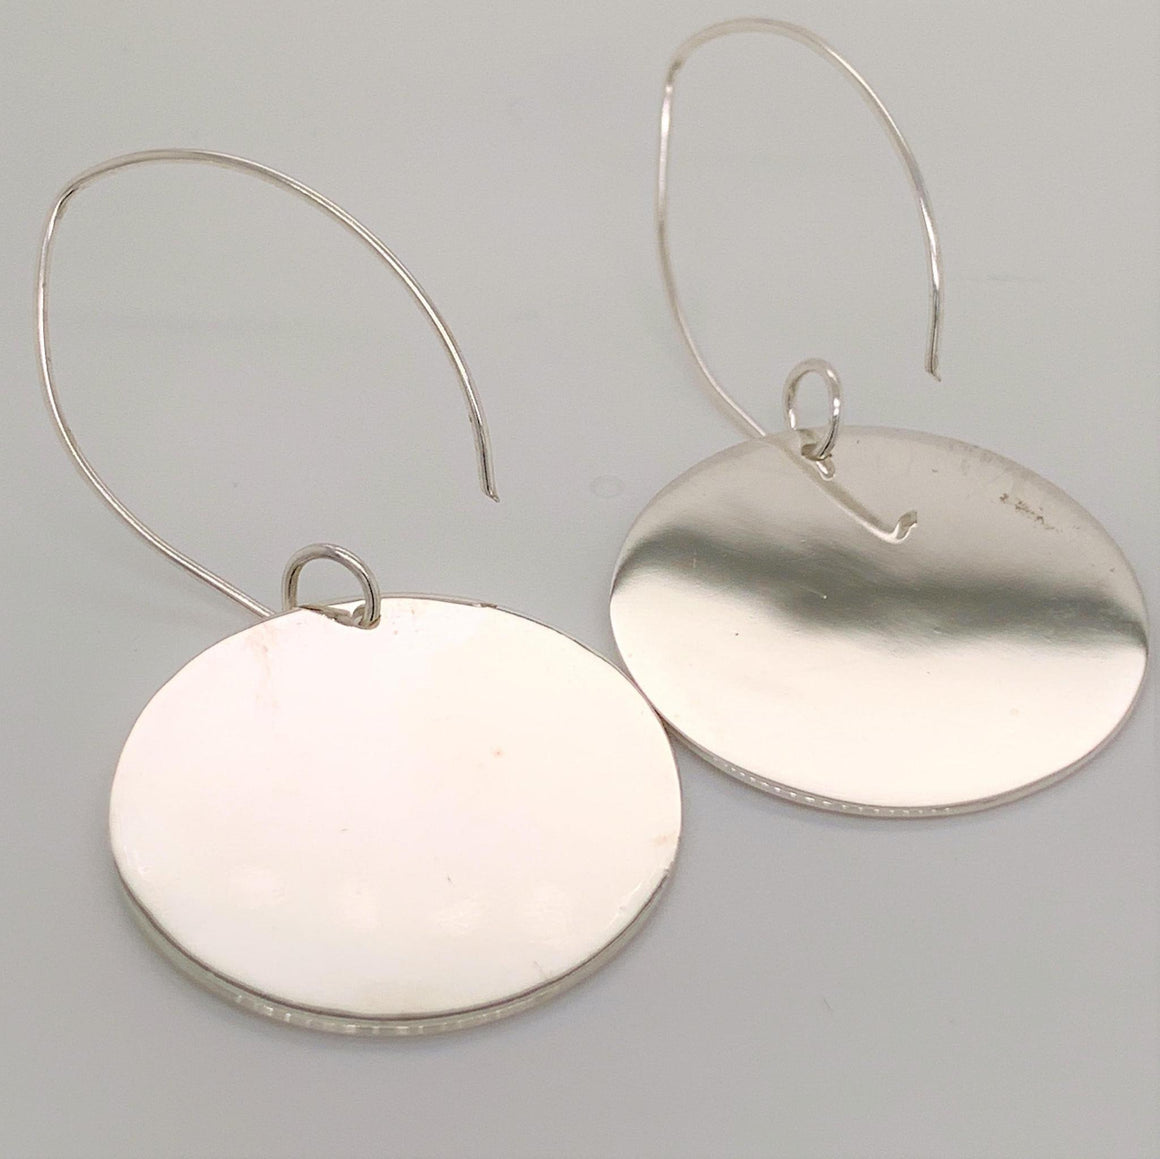 GERMAN SILVER ROUND ENGRAVABLE EARRINGS WITH LONG WIRE - Atlanta Jewelers Supply